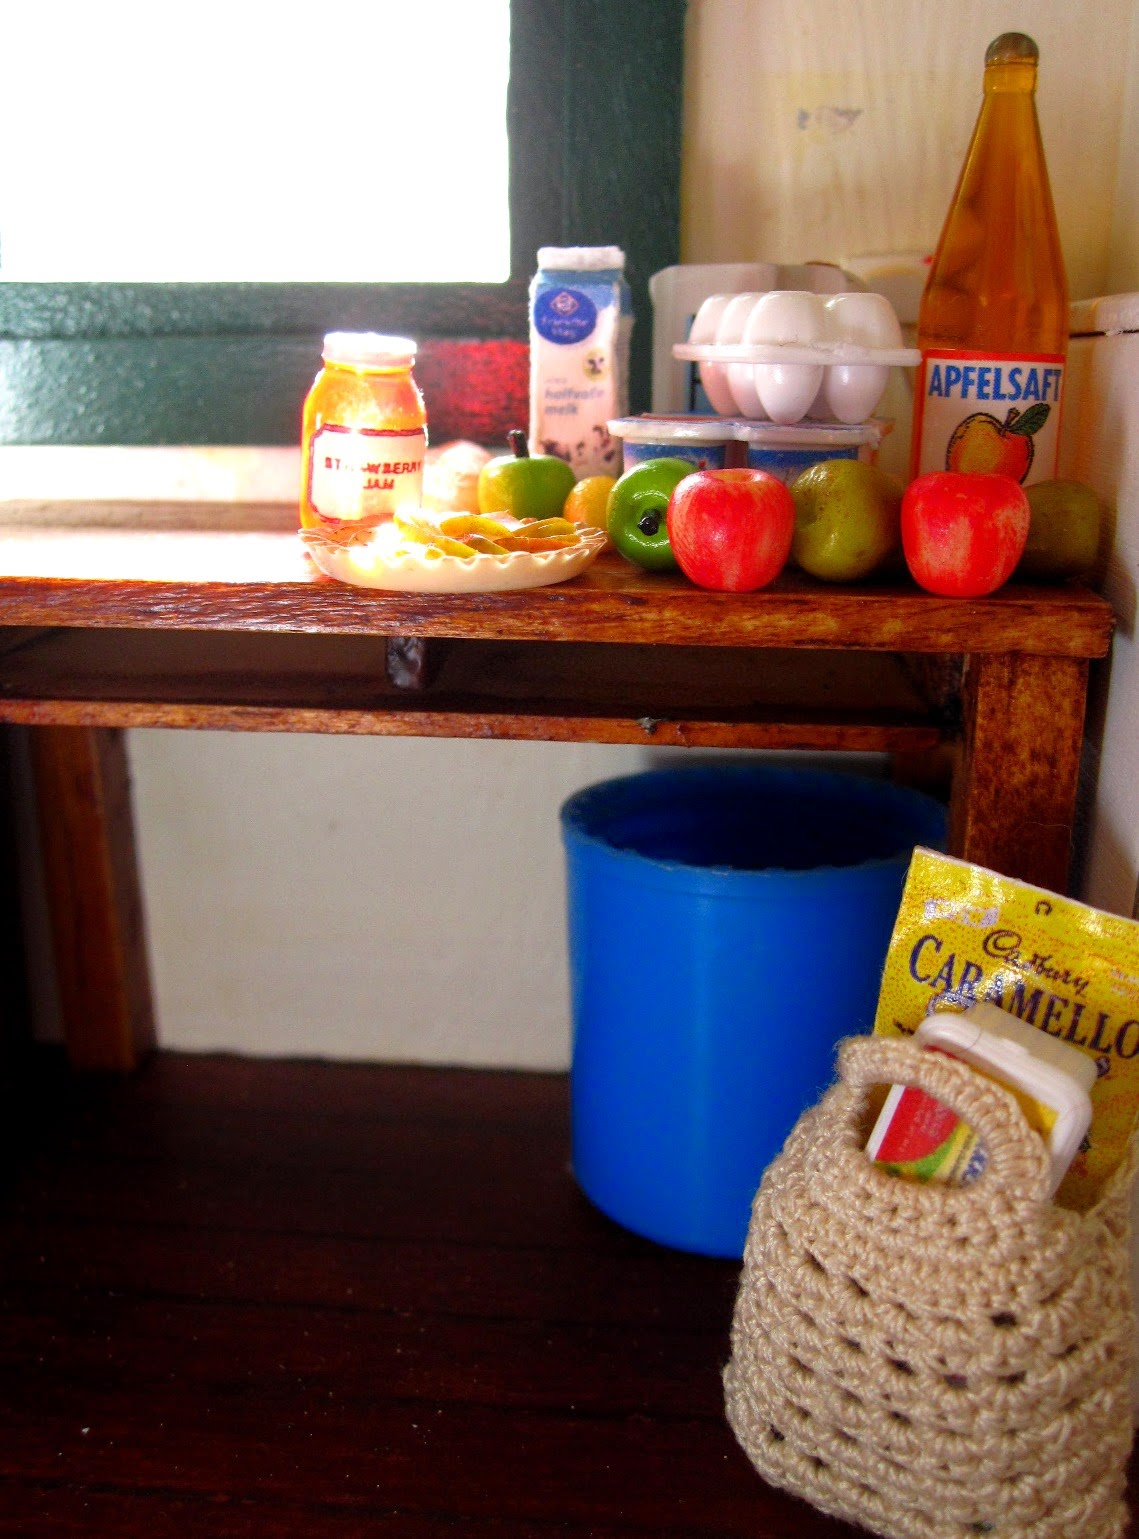 Inside of a miniature holiday house, showing a table with a selection of miniature grocery items, and a bag of groceries is on the floor underneath,